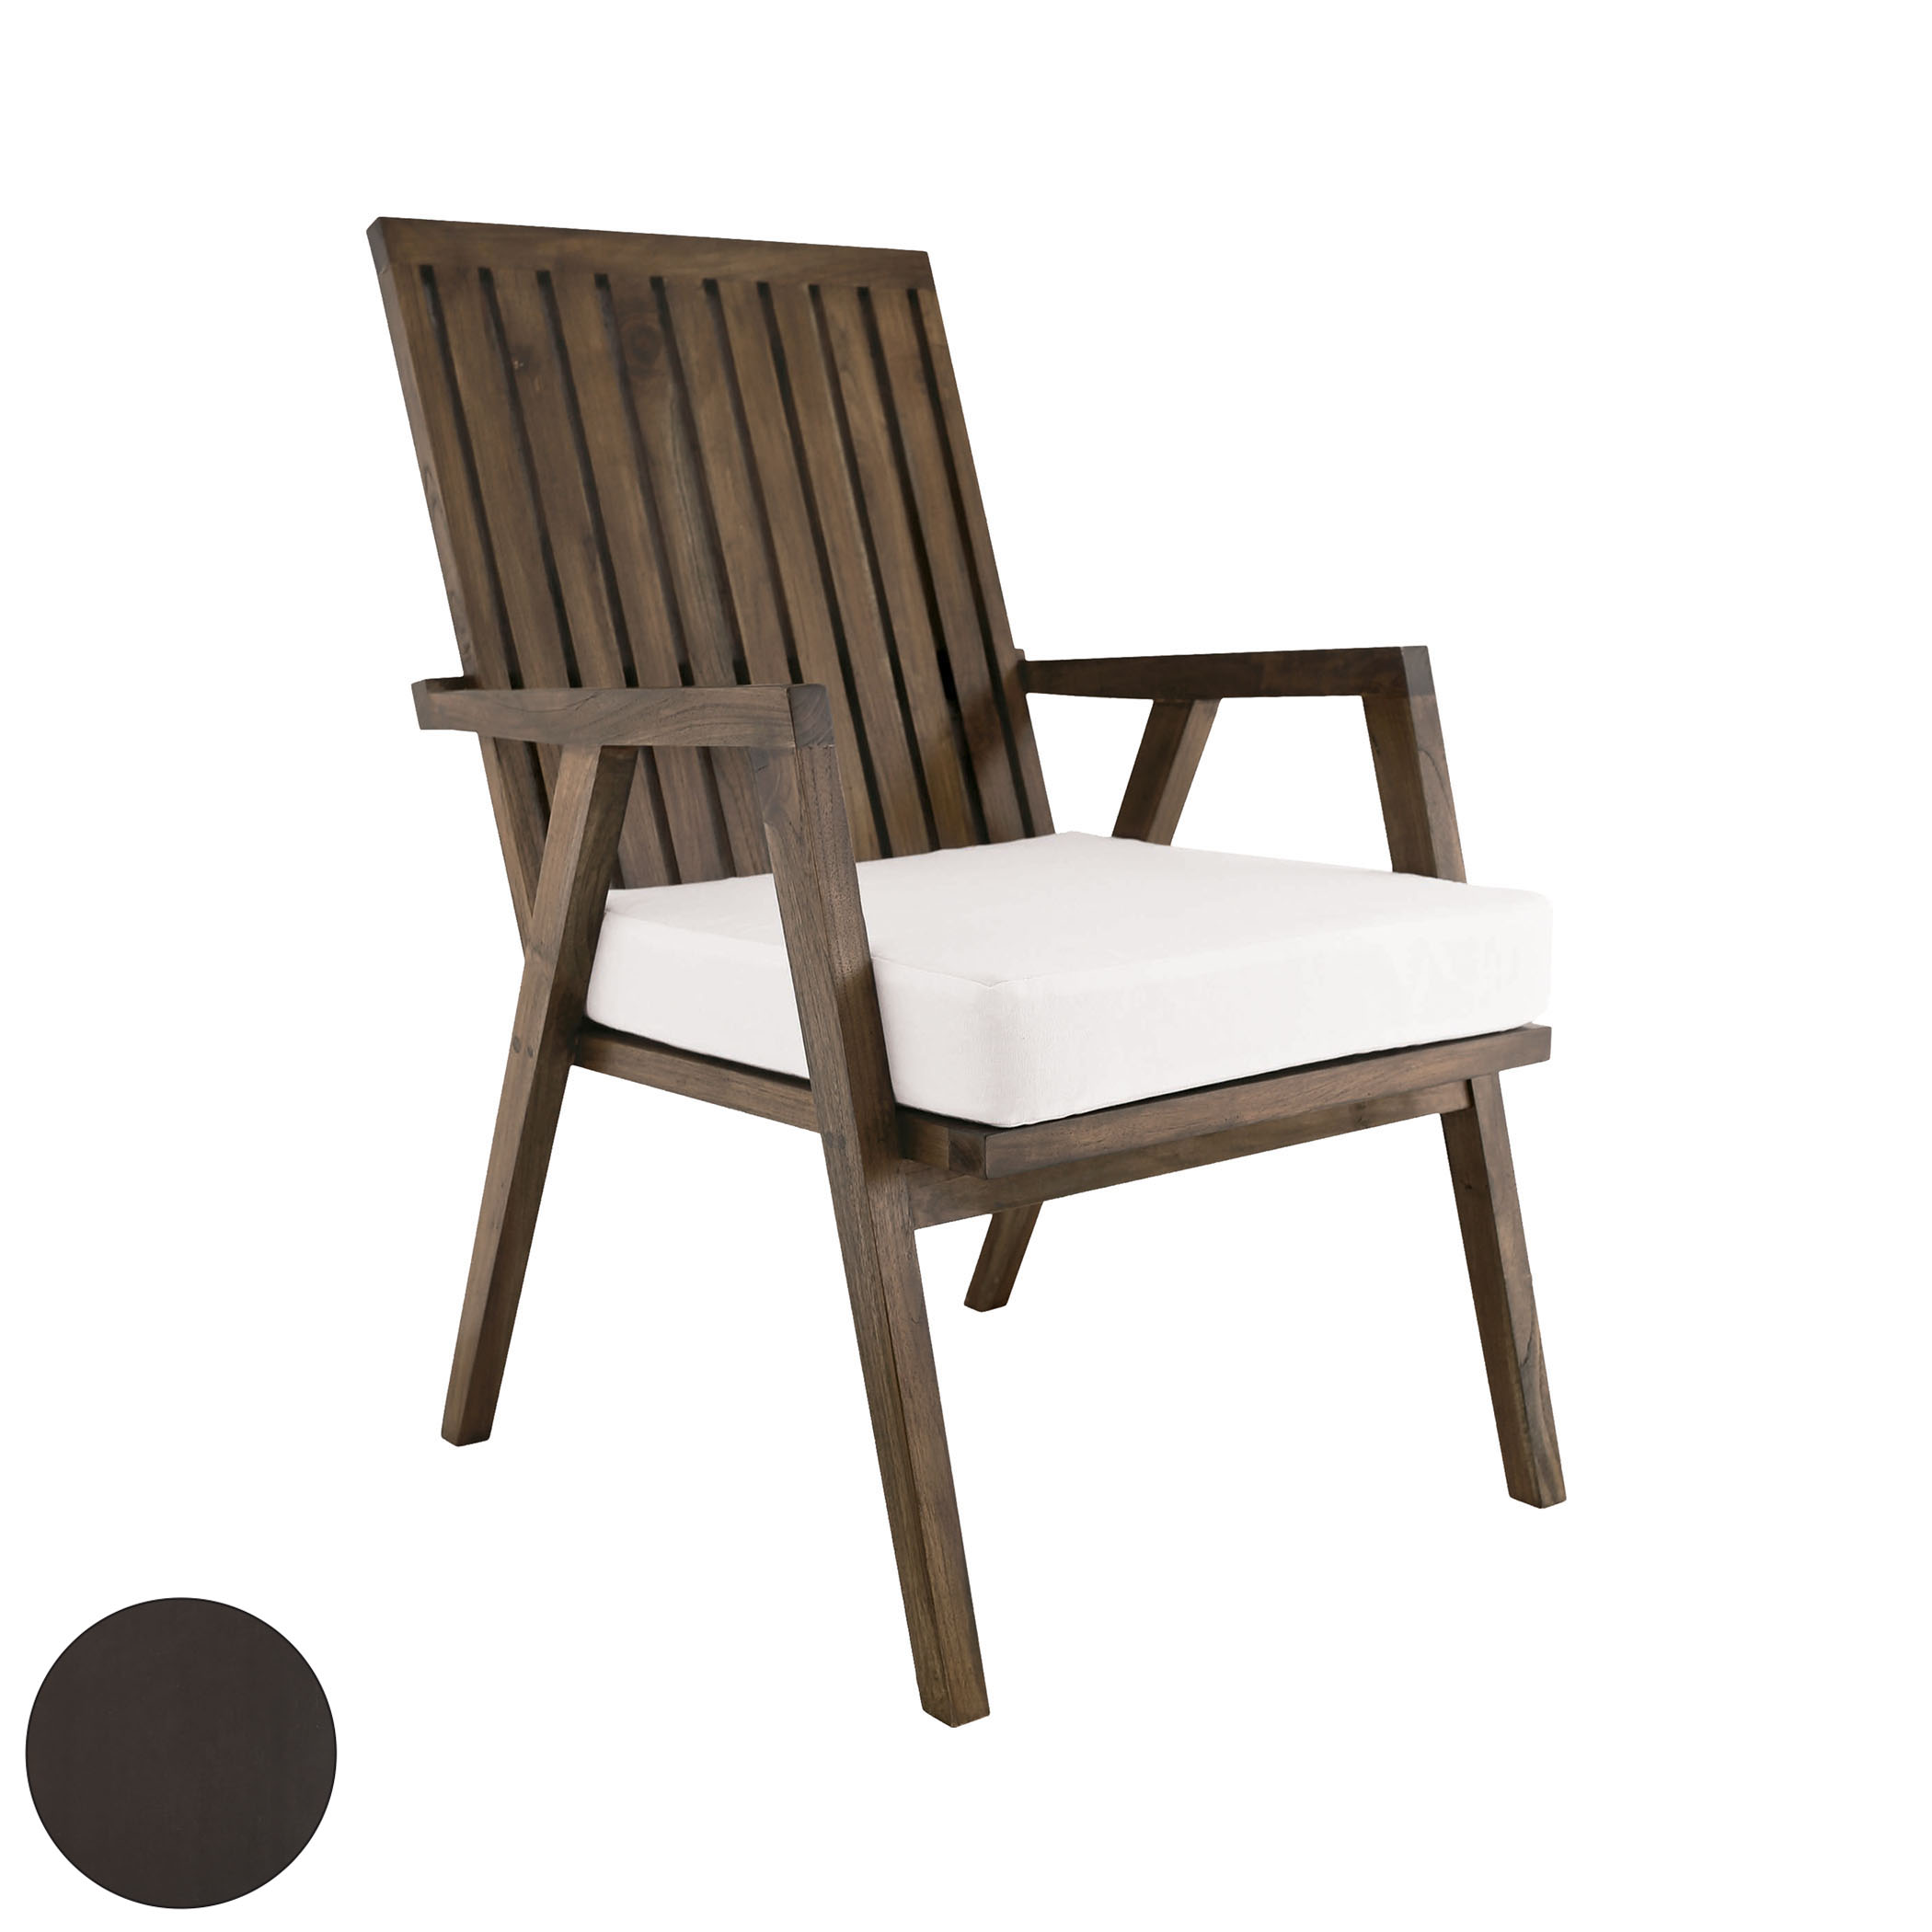 Teak Garden Patio Chair in Antique Smoke 6917015AS | ELK Home